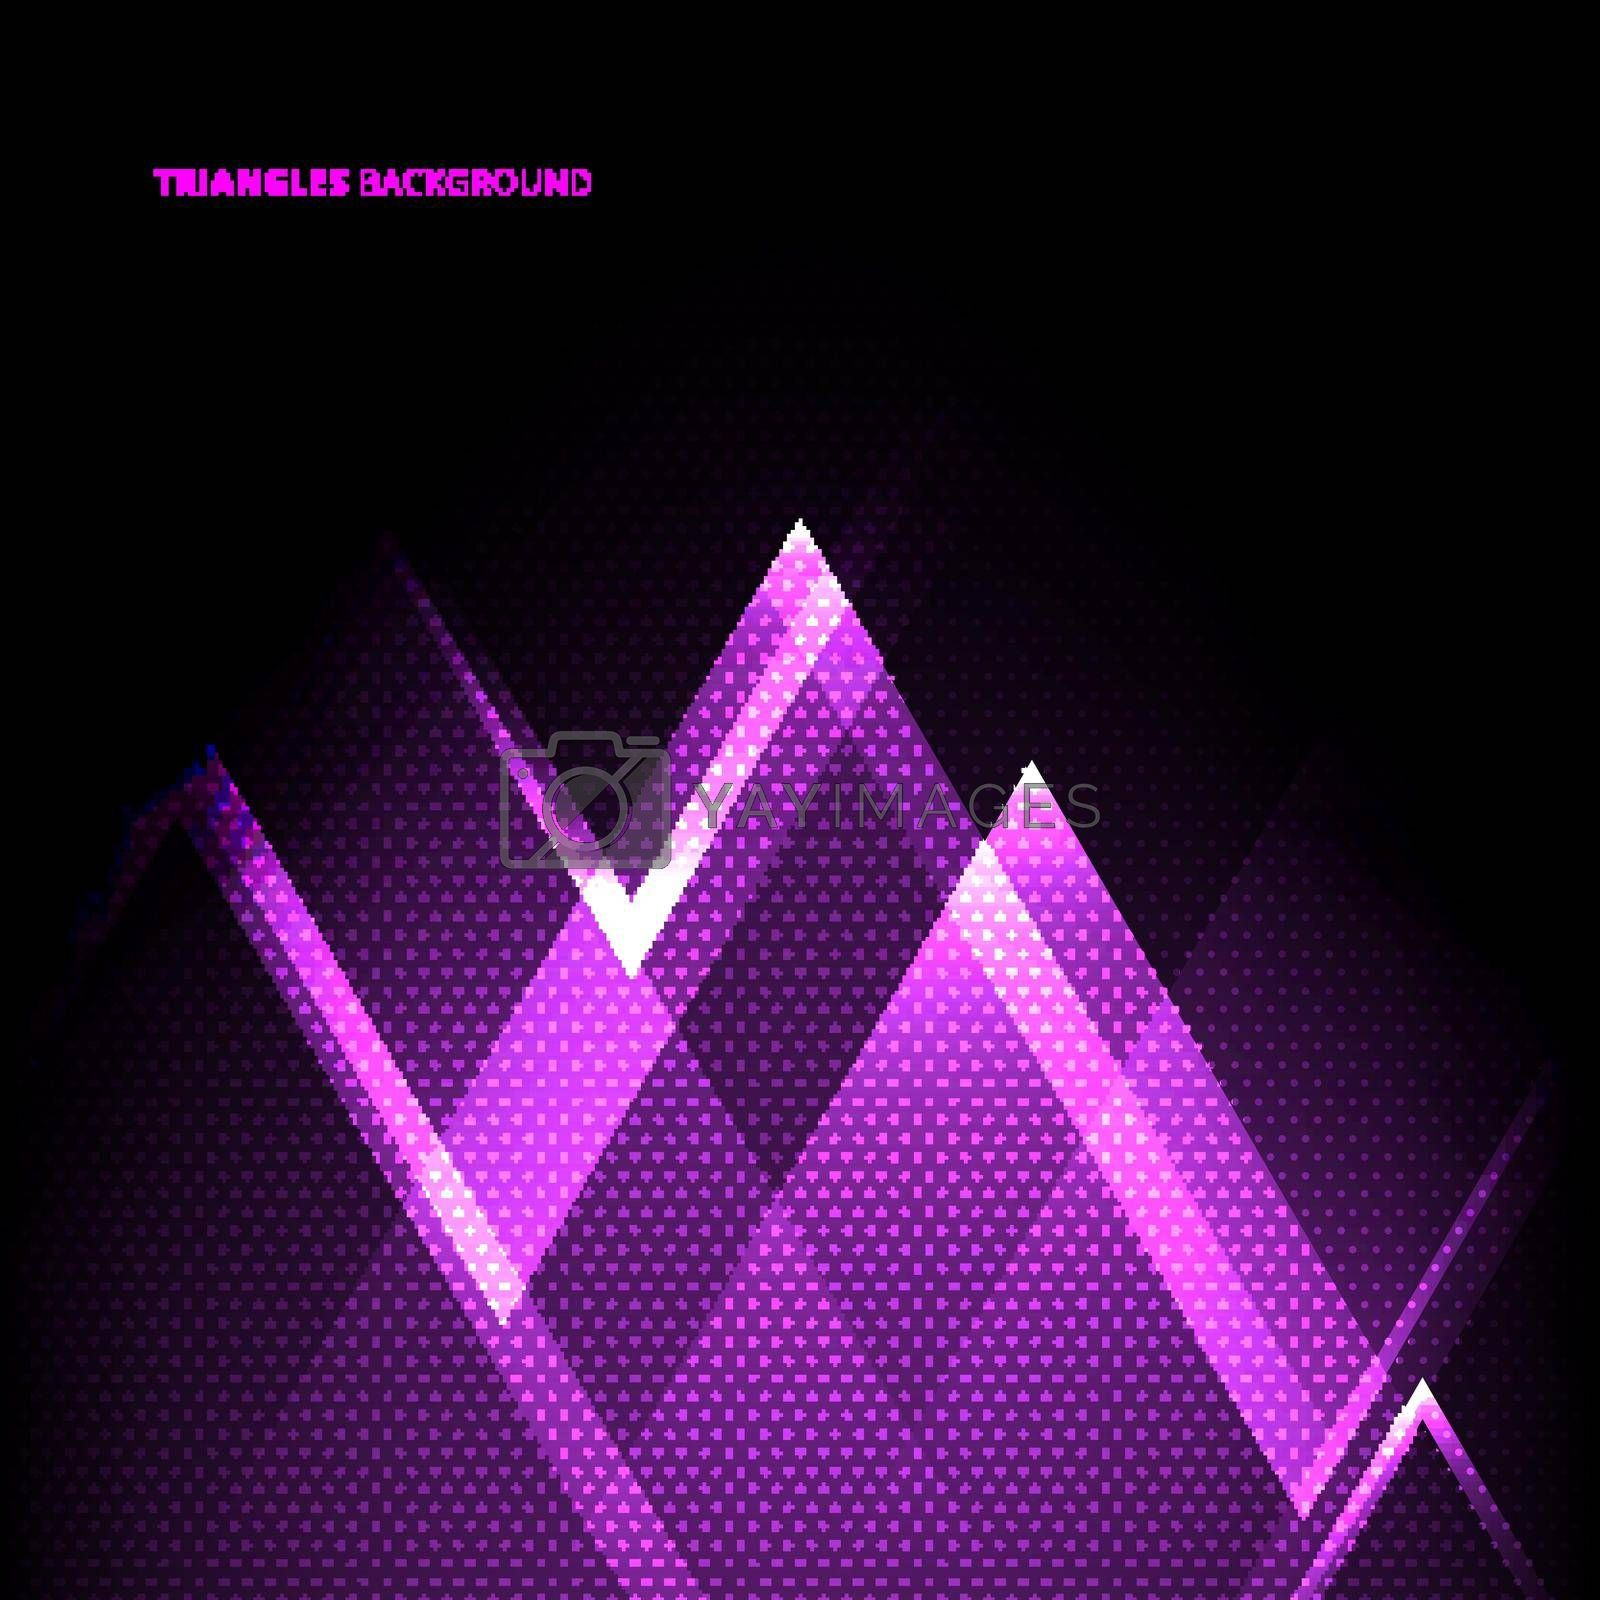 Abstract purple geometric triangles overlapping transparency layer on black background technology concept. Vector illustration